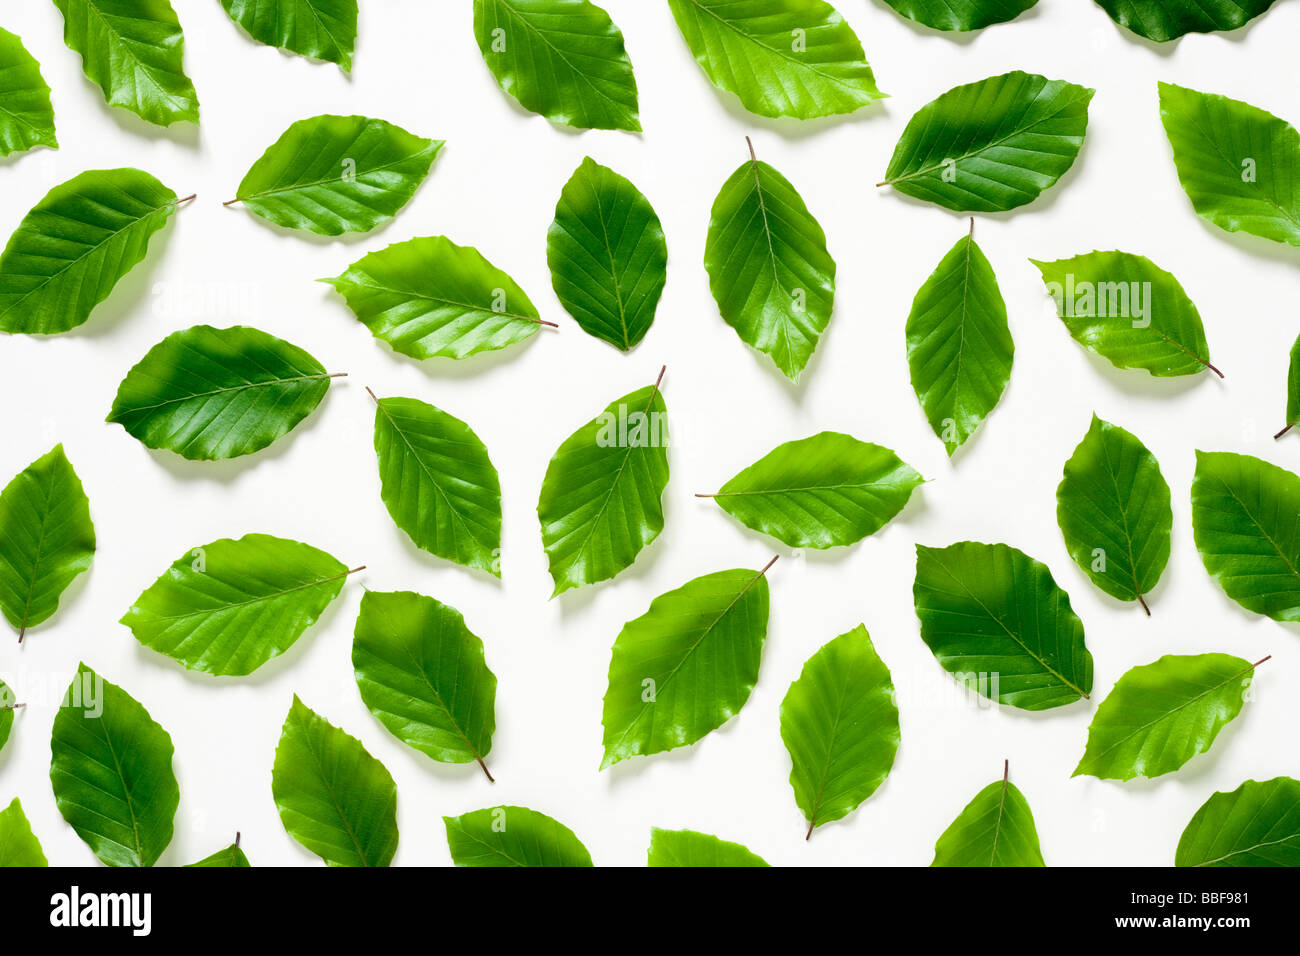 Beech leaves. Fagus sylvatica. UK - Stock Image